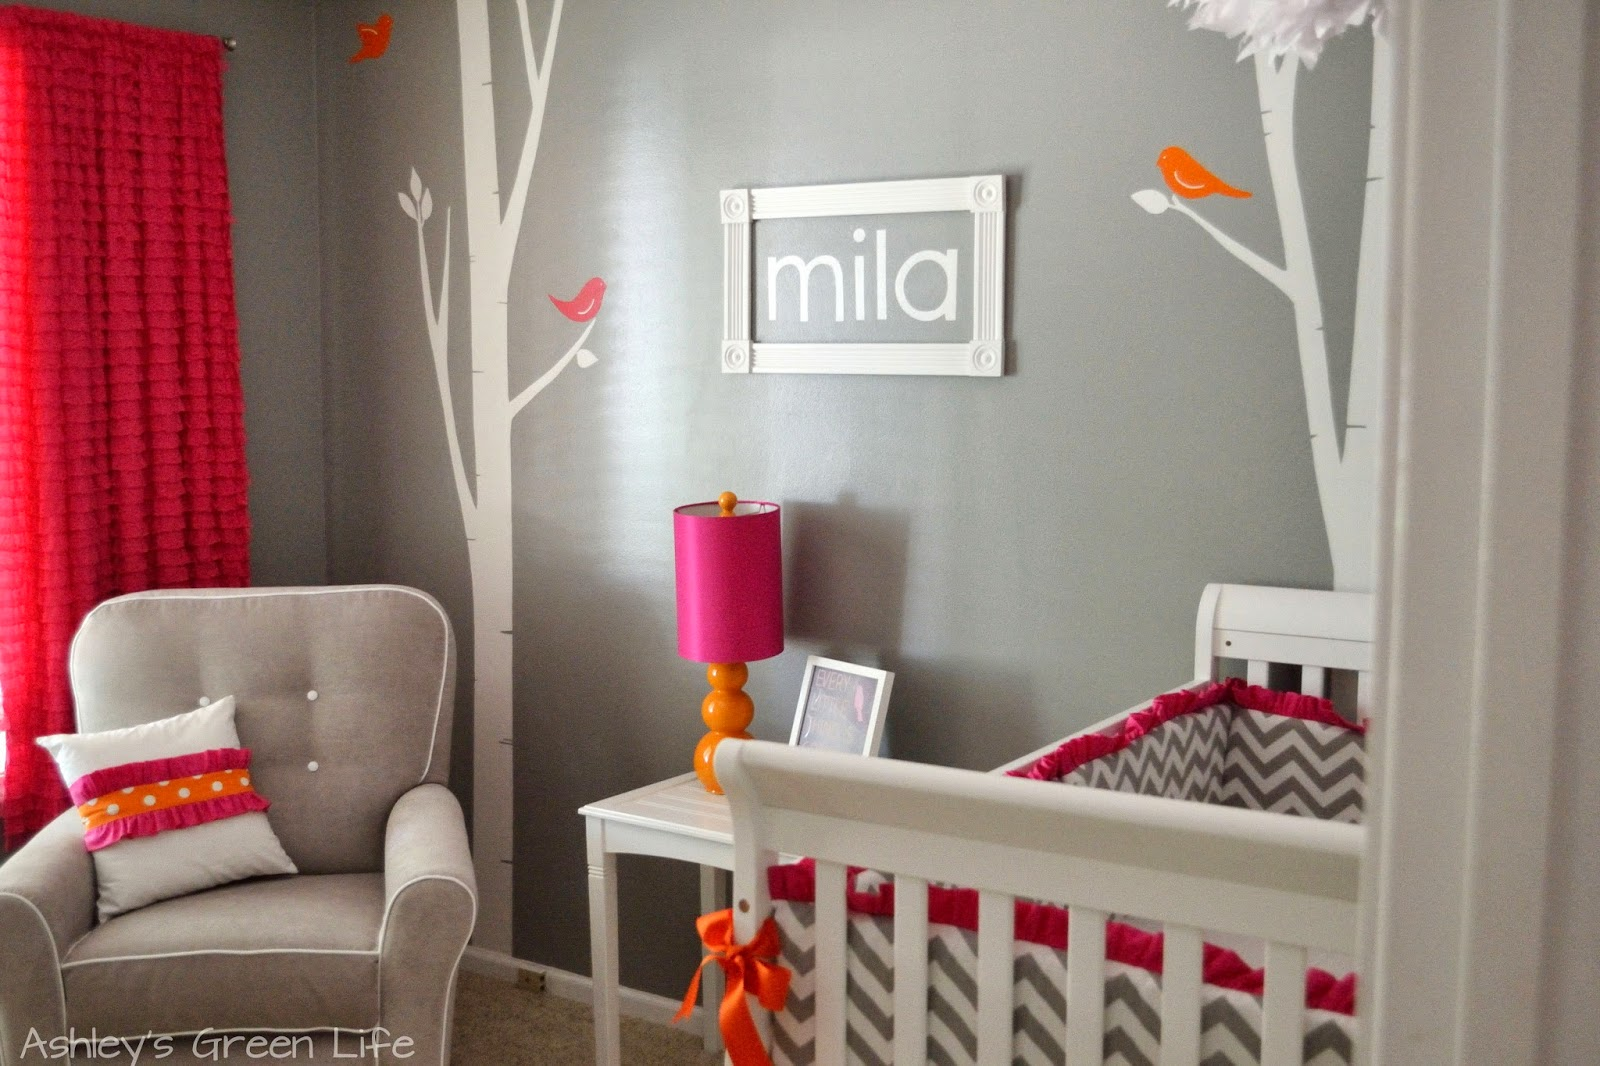 Ashleys Green Life Baby Milas Grey Pink Orange Nursery Reveal - Pink and grey nursery decor